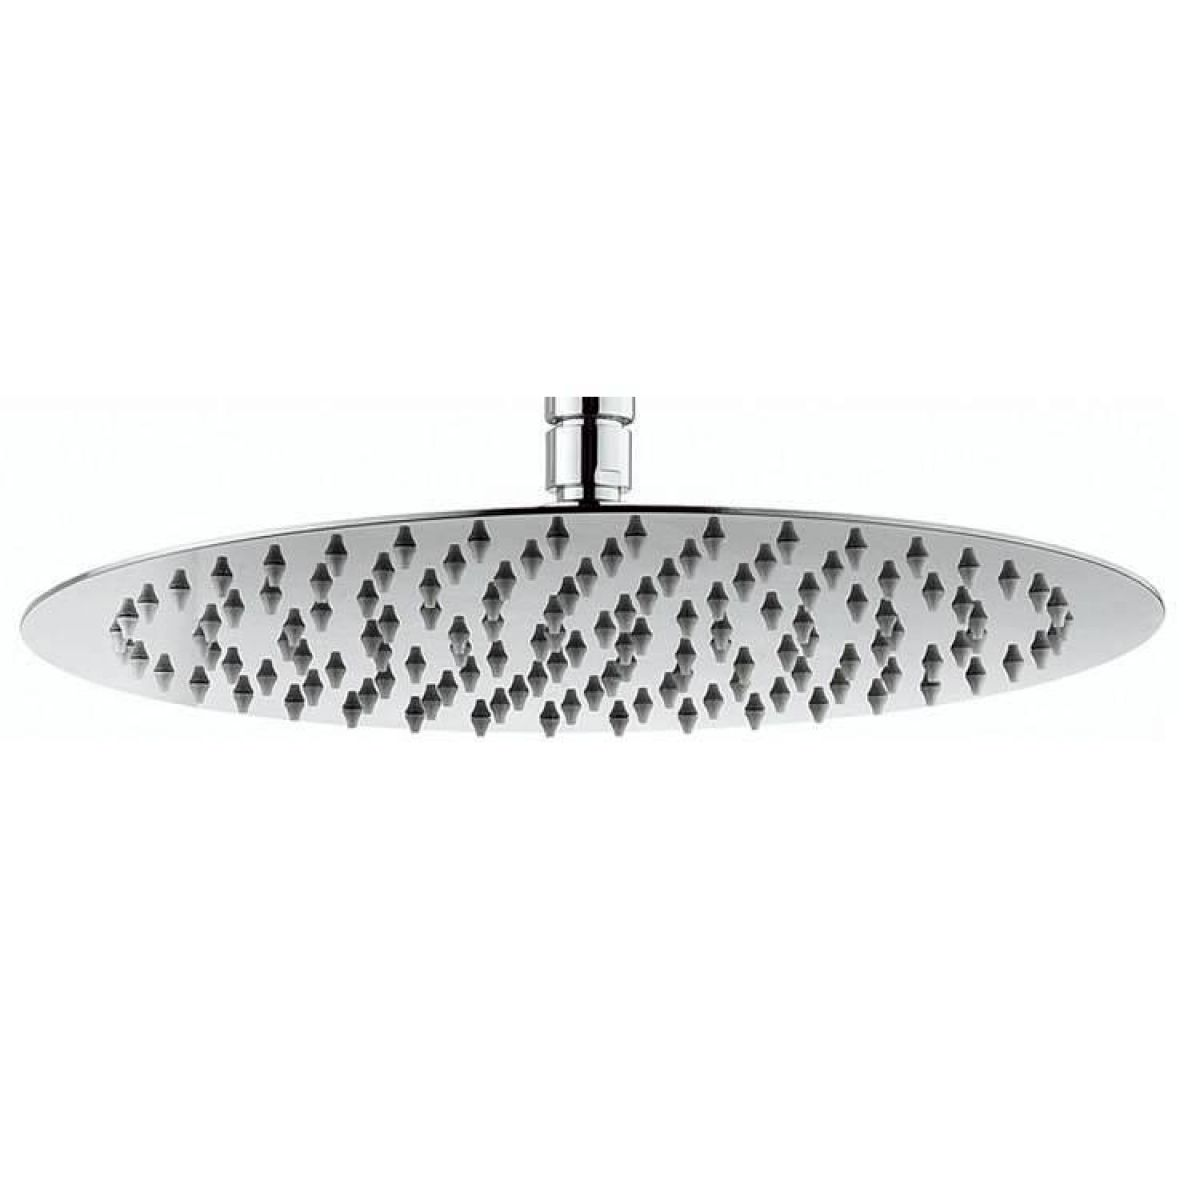 ... Crosswater Central Fixed Shower Head ...